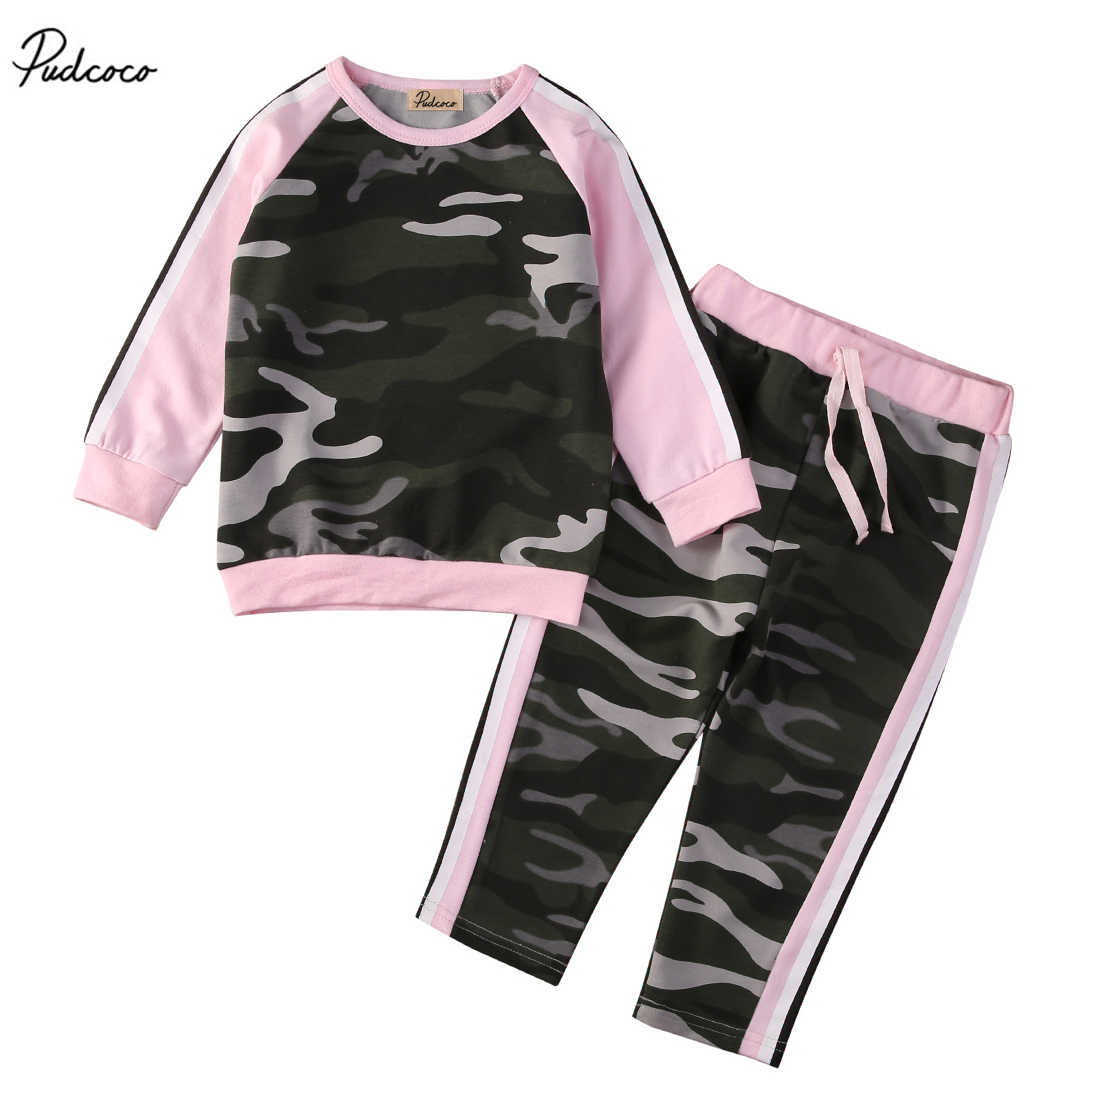 2PCS Kids Baby Toddler Girls Boys Clothes Set Camouflage Patchwork Long Sleeve T-shirt Tops Pants Leggings Outfits